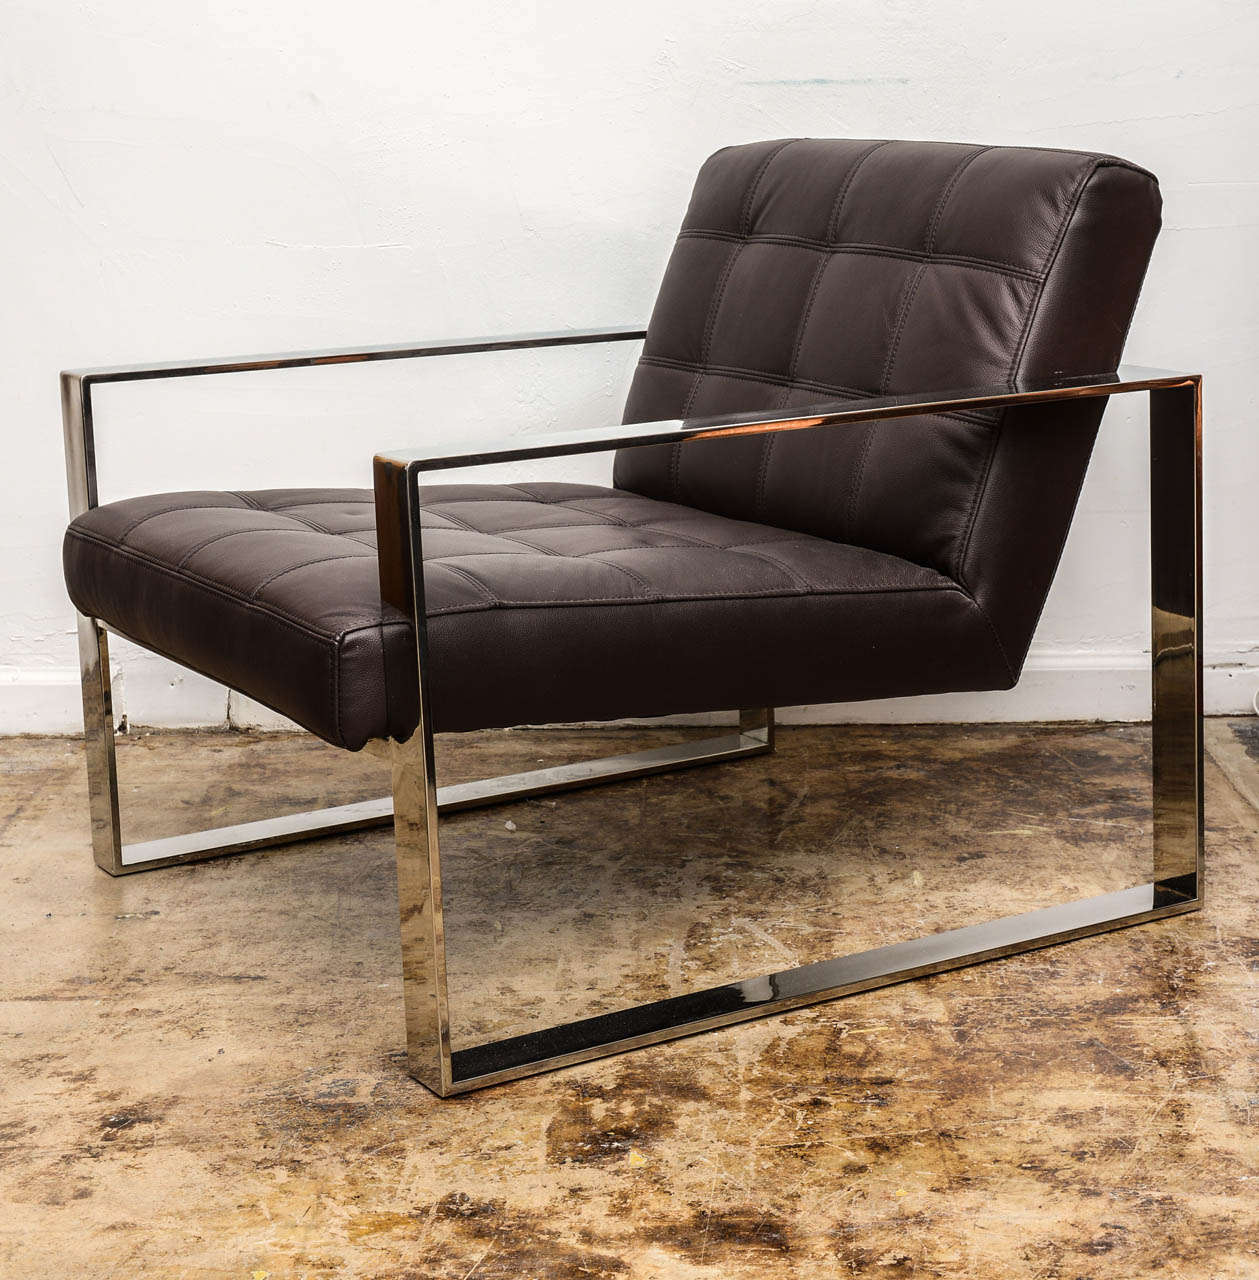 Pair Of Modern Milo Baughman Style Chairs And Ottoman